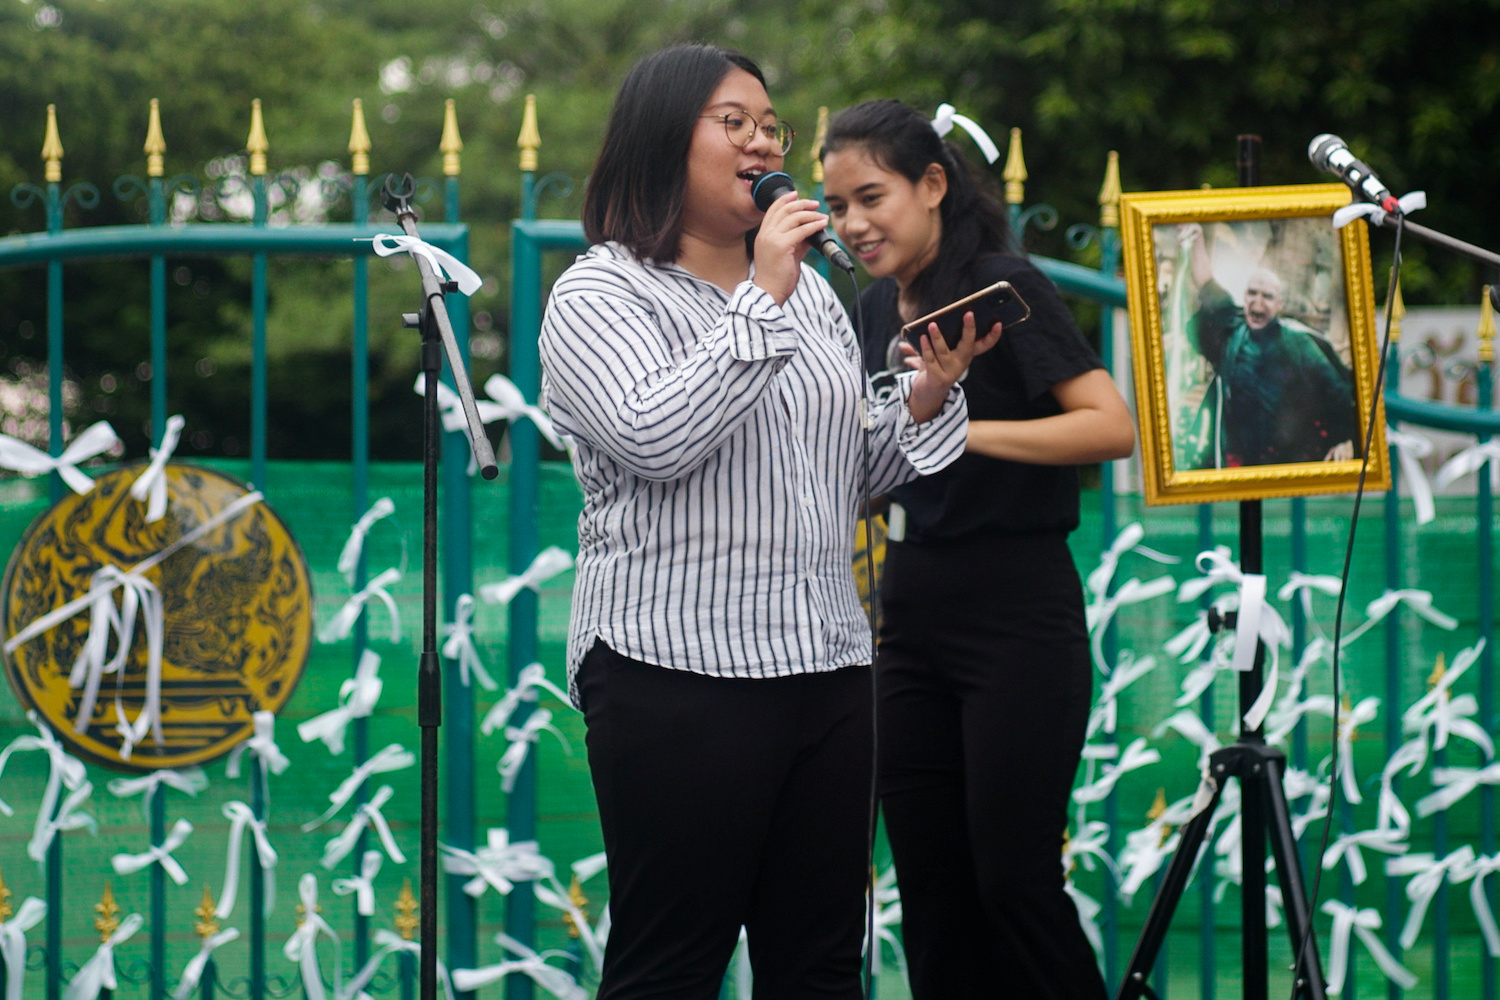 Jutatip Sirikhan, president of the Student Union of Thailand, speaks in front of the ribbon-bedecked gate of the gate of Bangkok Remand Prison to call for the release of activists Anon Nampa and Panupong Jadnok on Friday. (Reuters Photo)